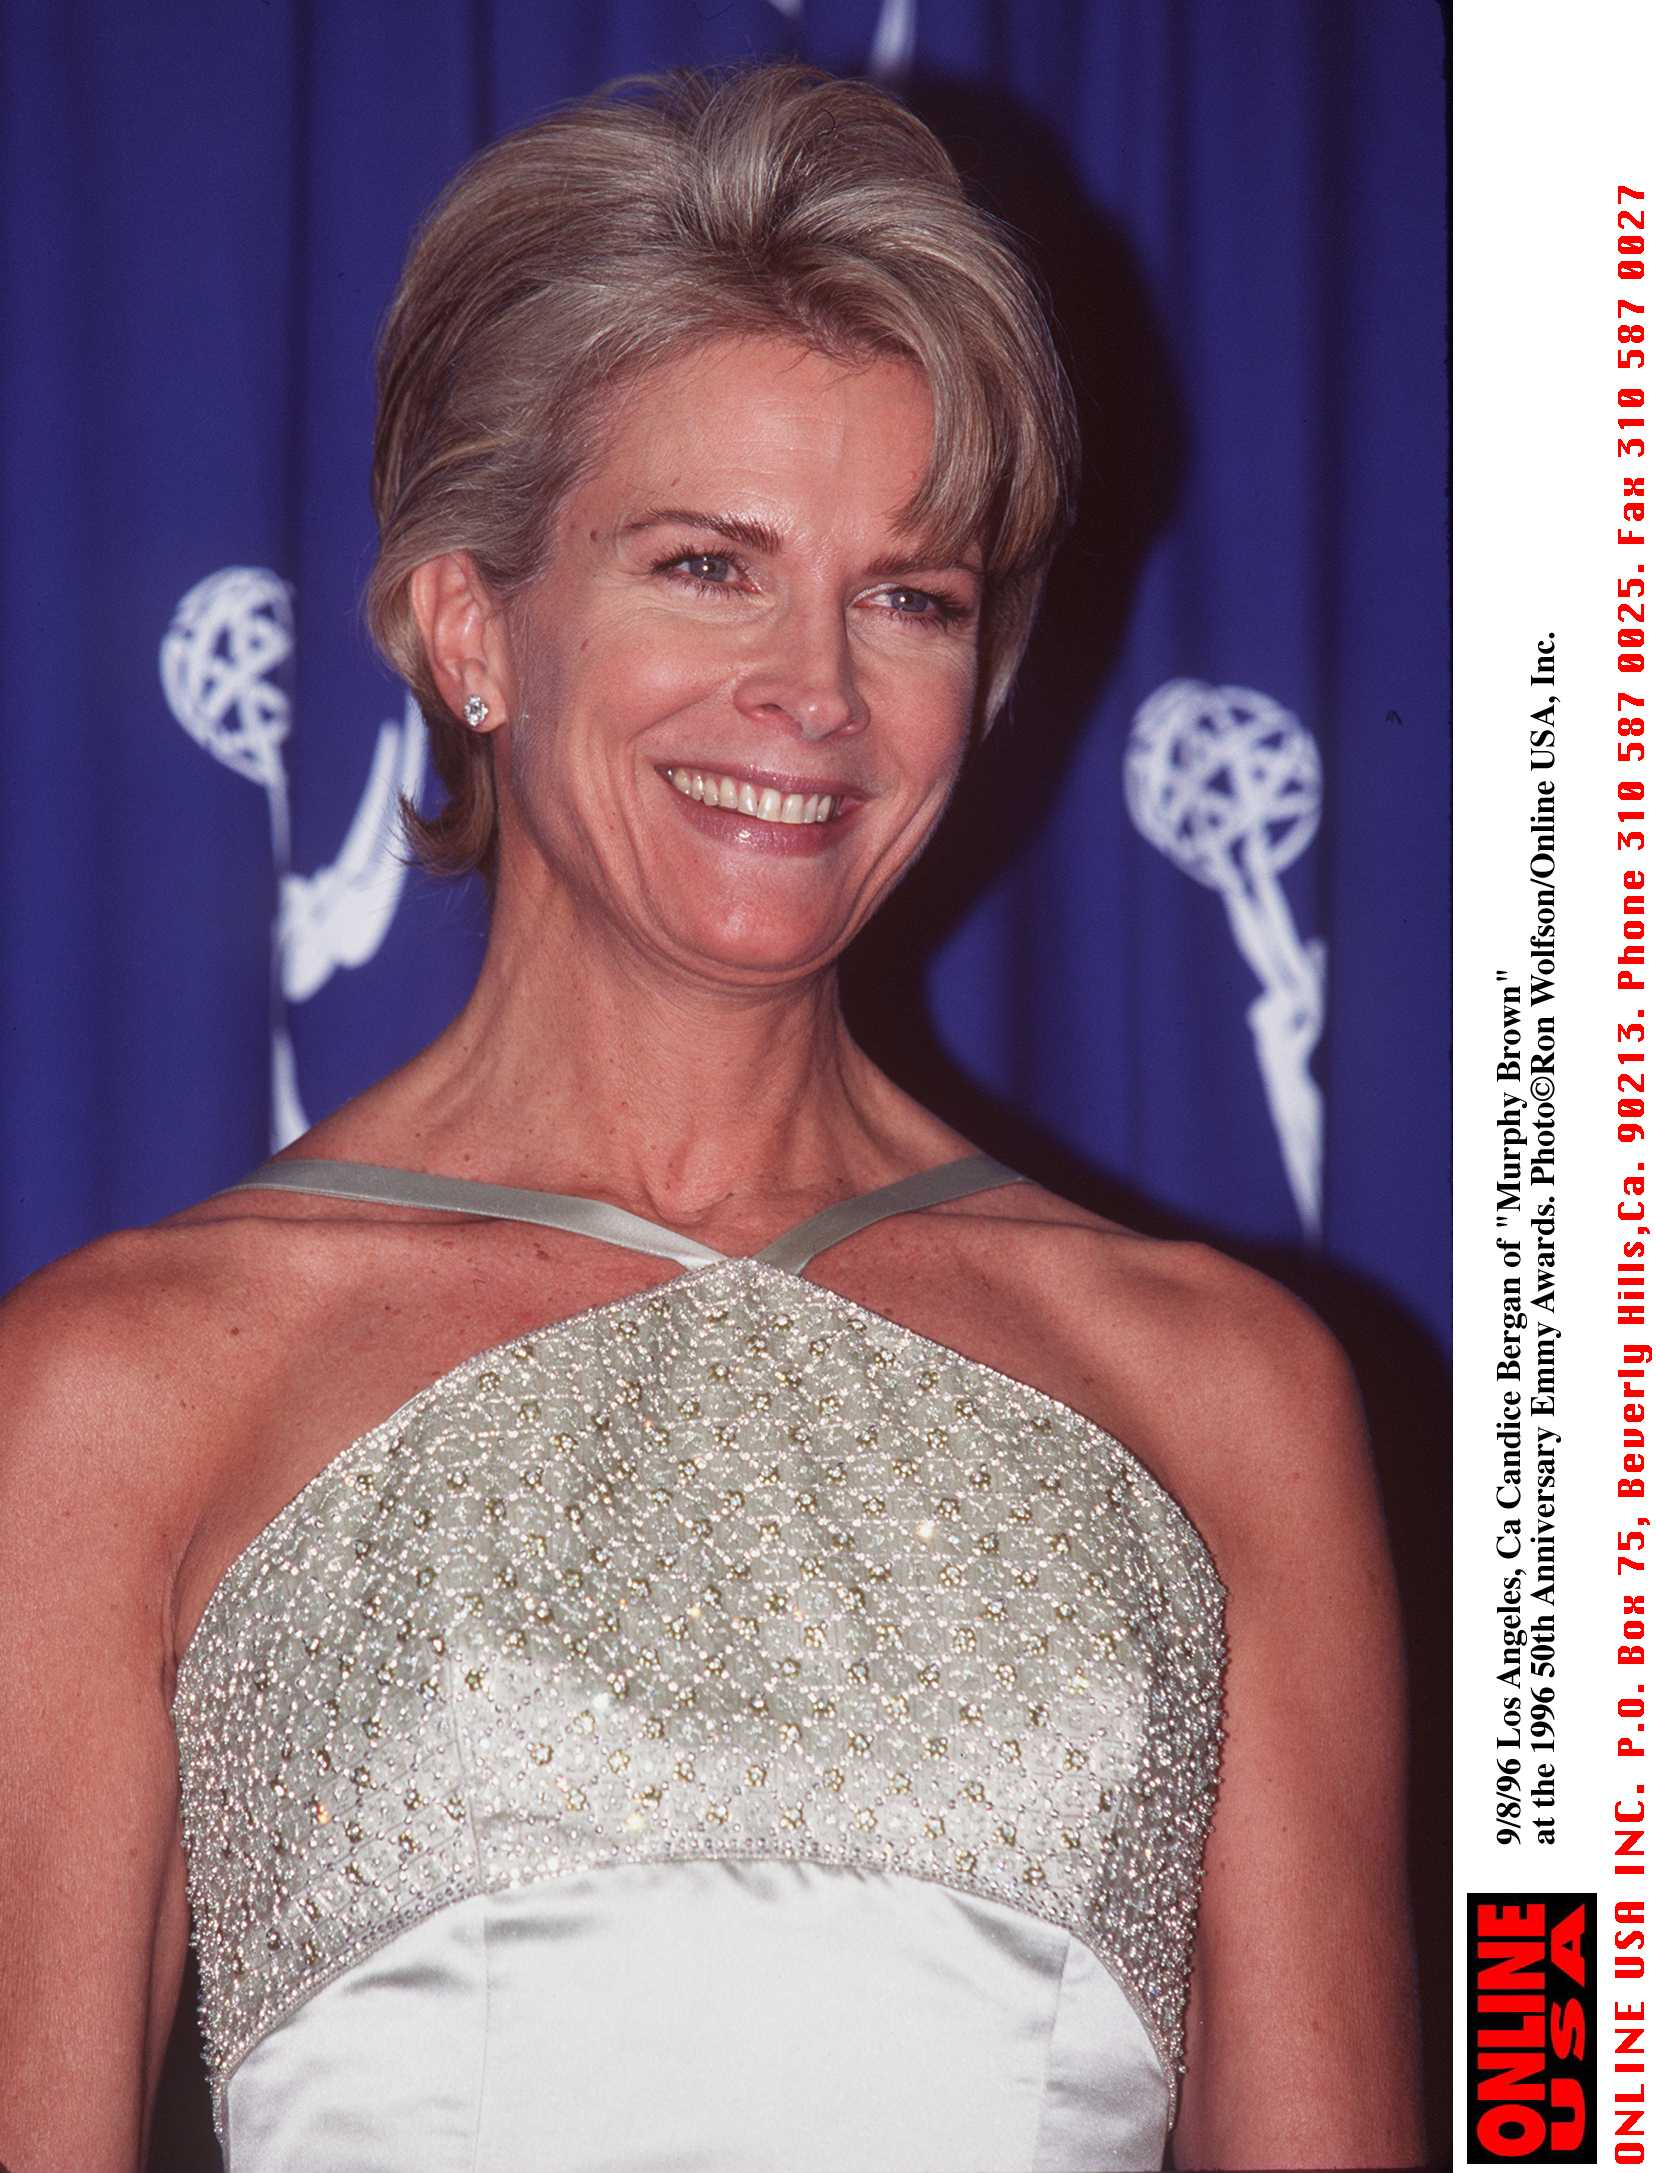 Candice Bergen I Image: Getty Images